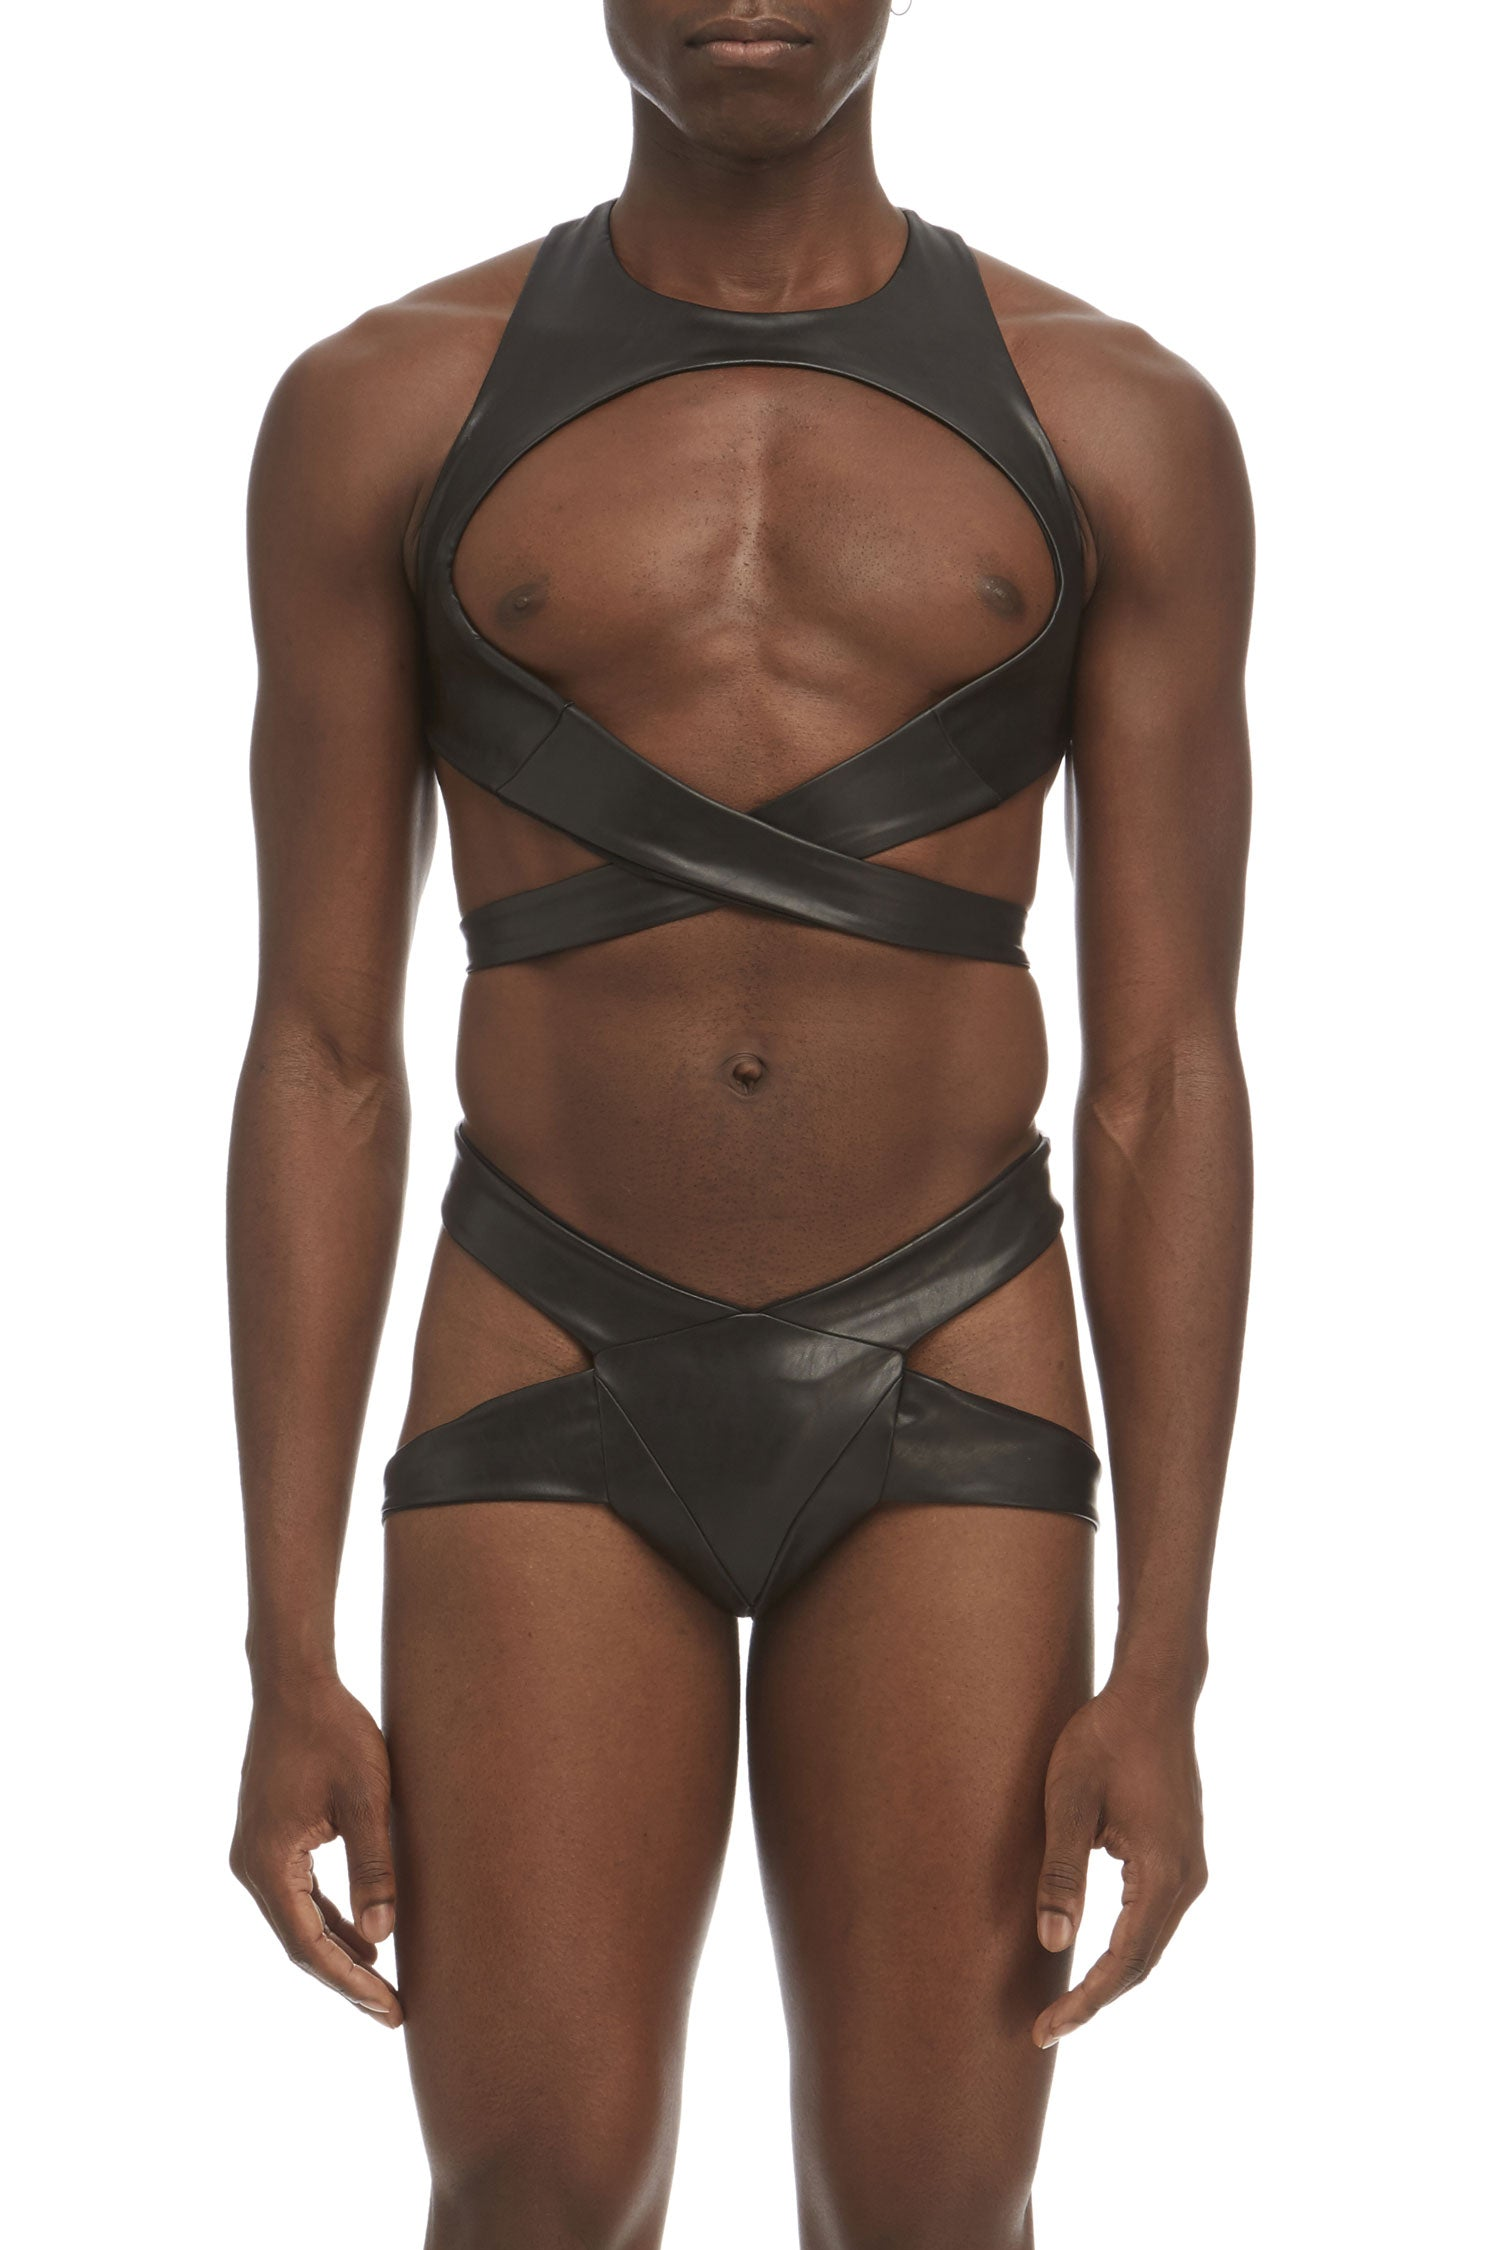 Maya mens' harness by DSTM - vegan leather